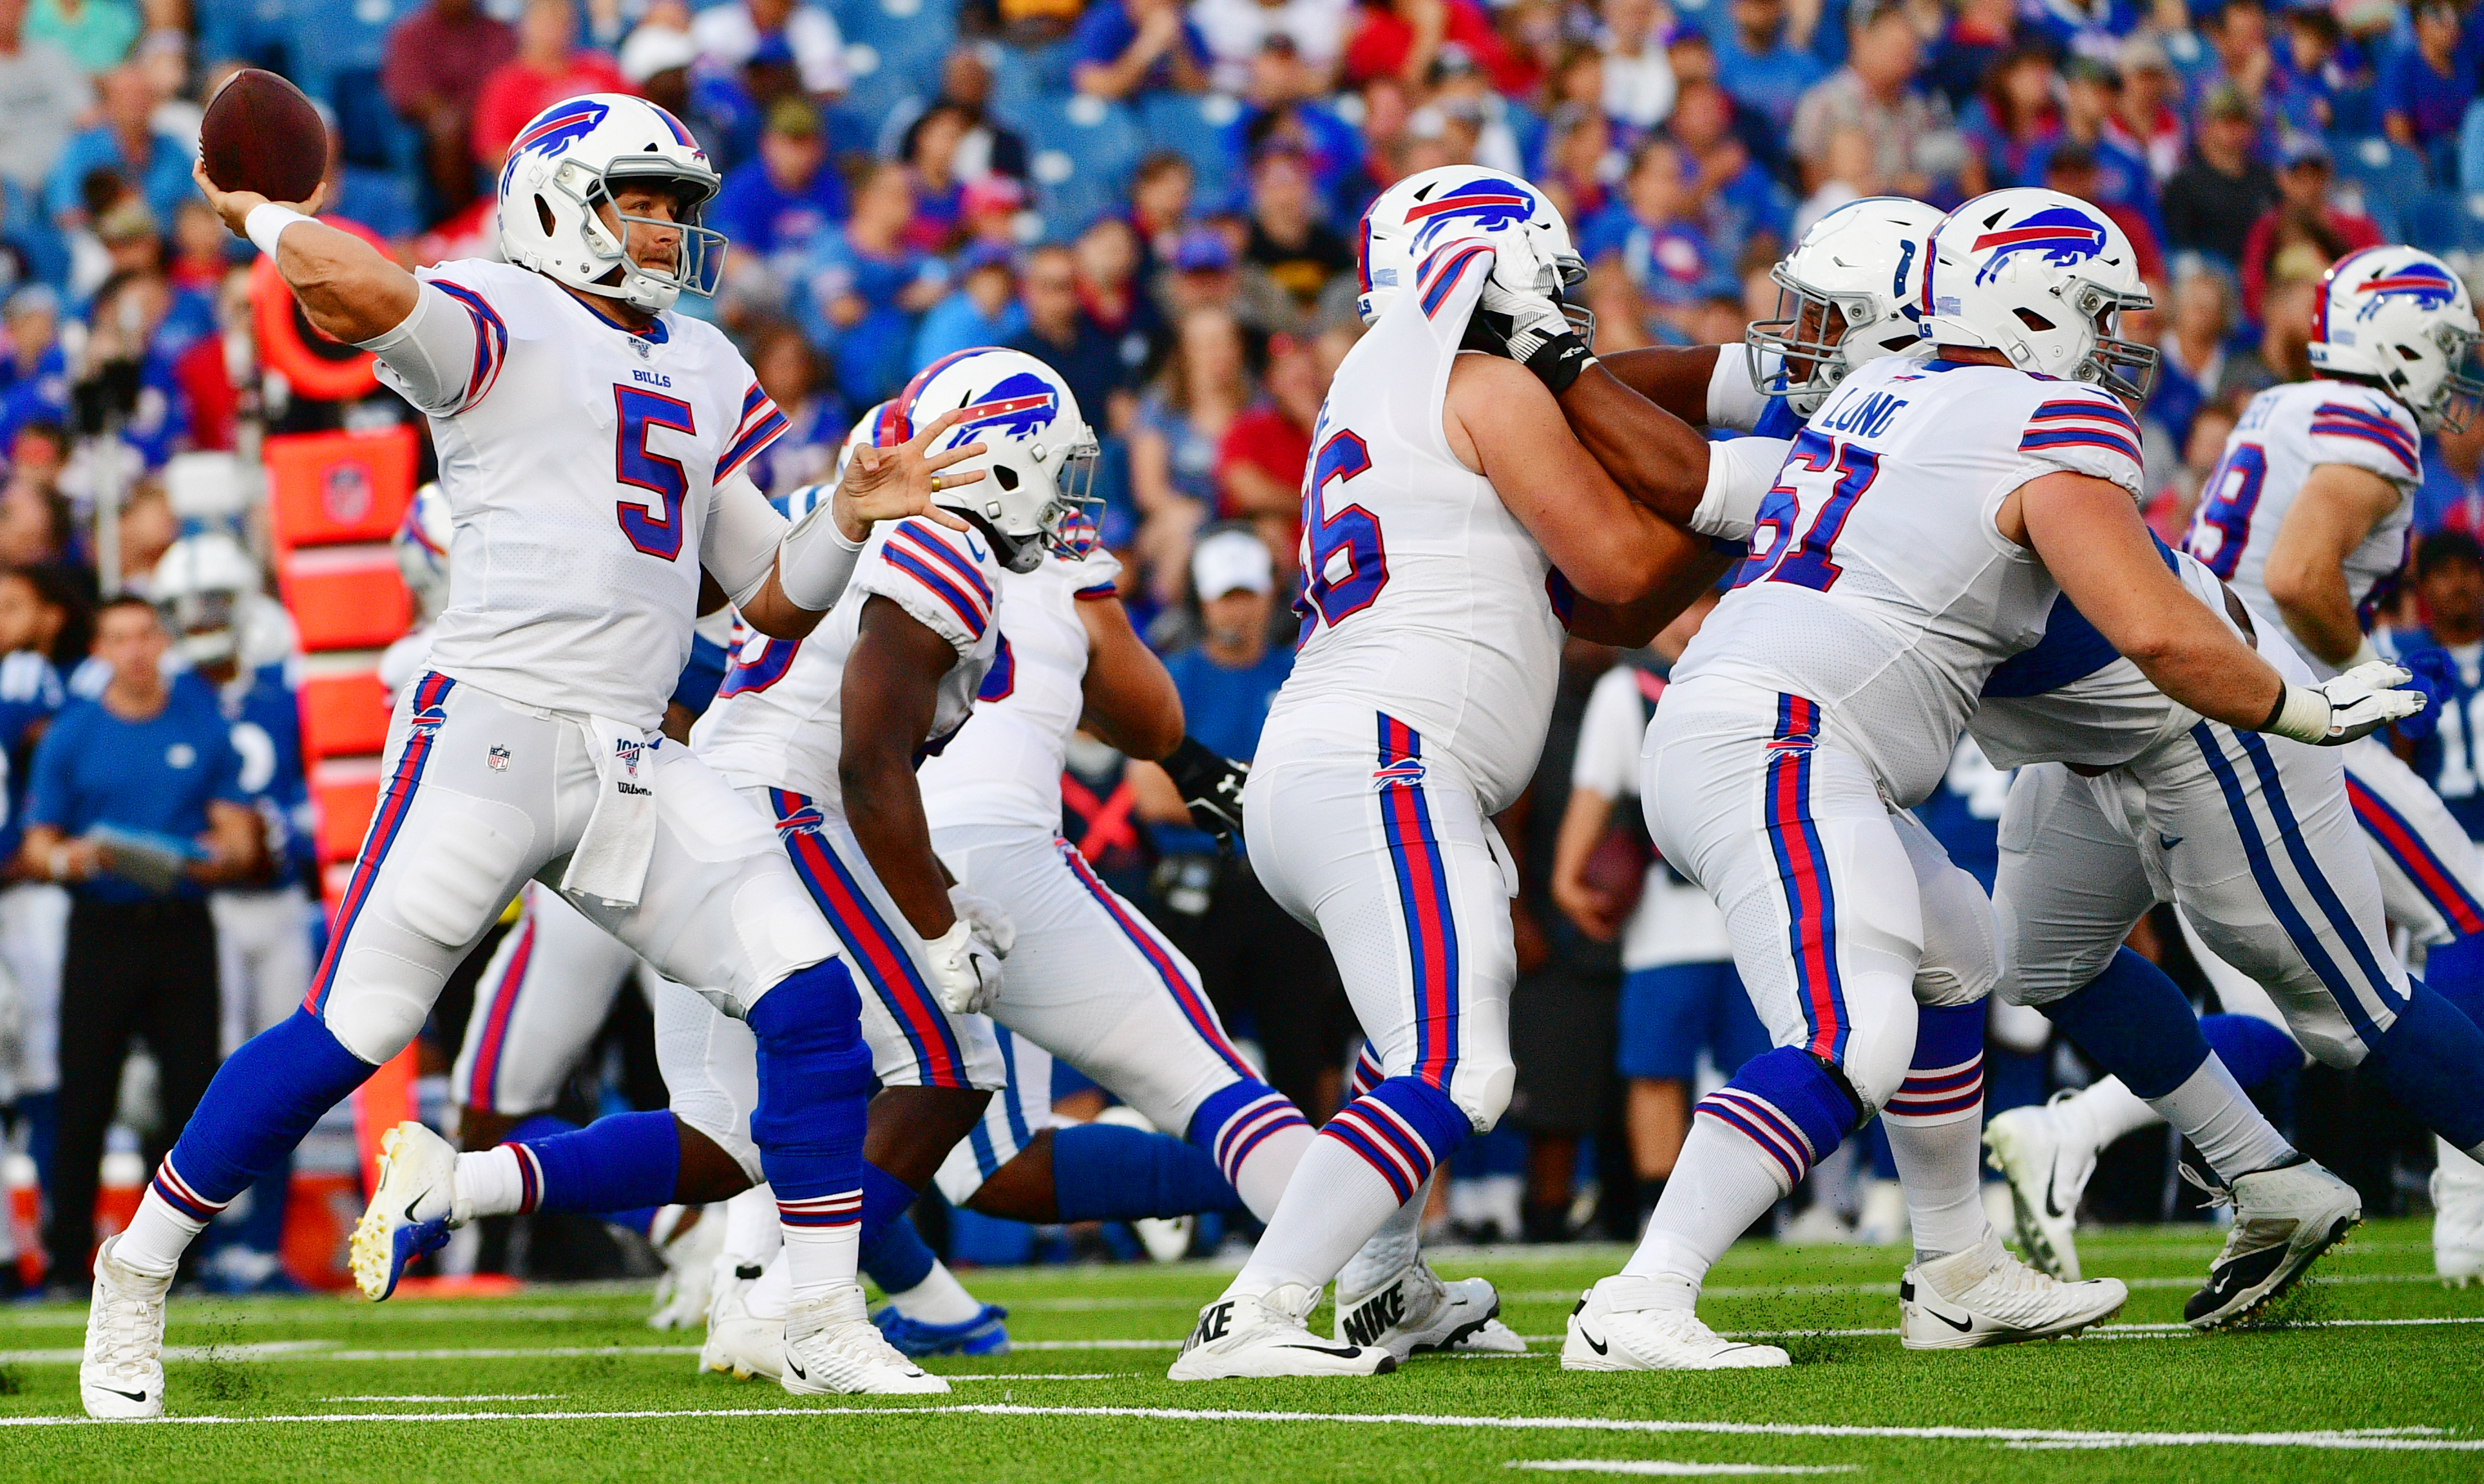 hot sale online f01c3 1d50b Buffalo Bills clinch preseason victory against Colts - The ...